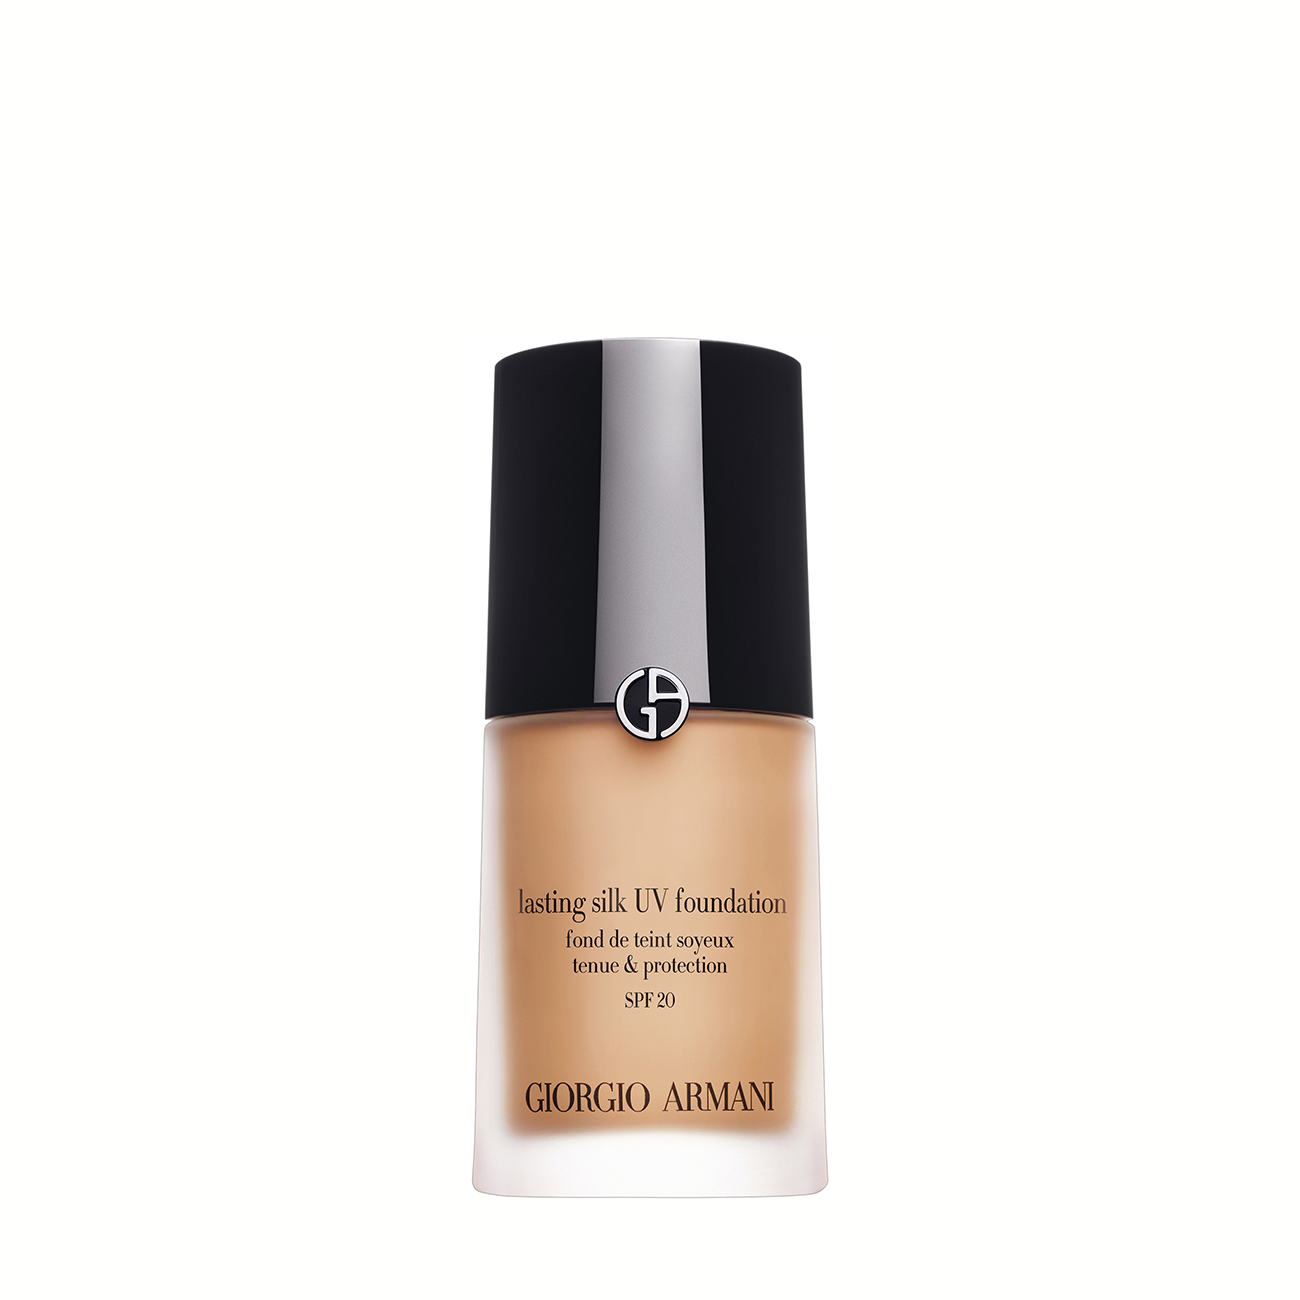 Lasting Silk Uv Foundation 7 30ml Giorgio Armani imagine 2021 bestvalue.eu